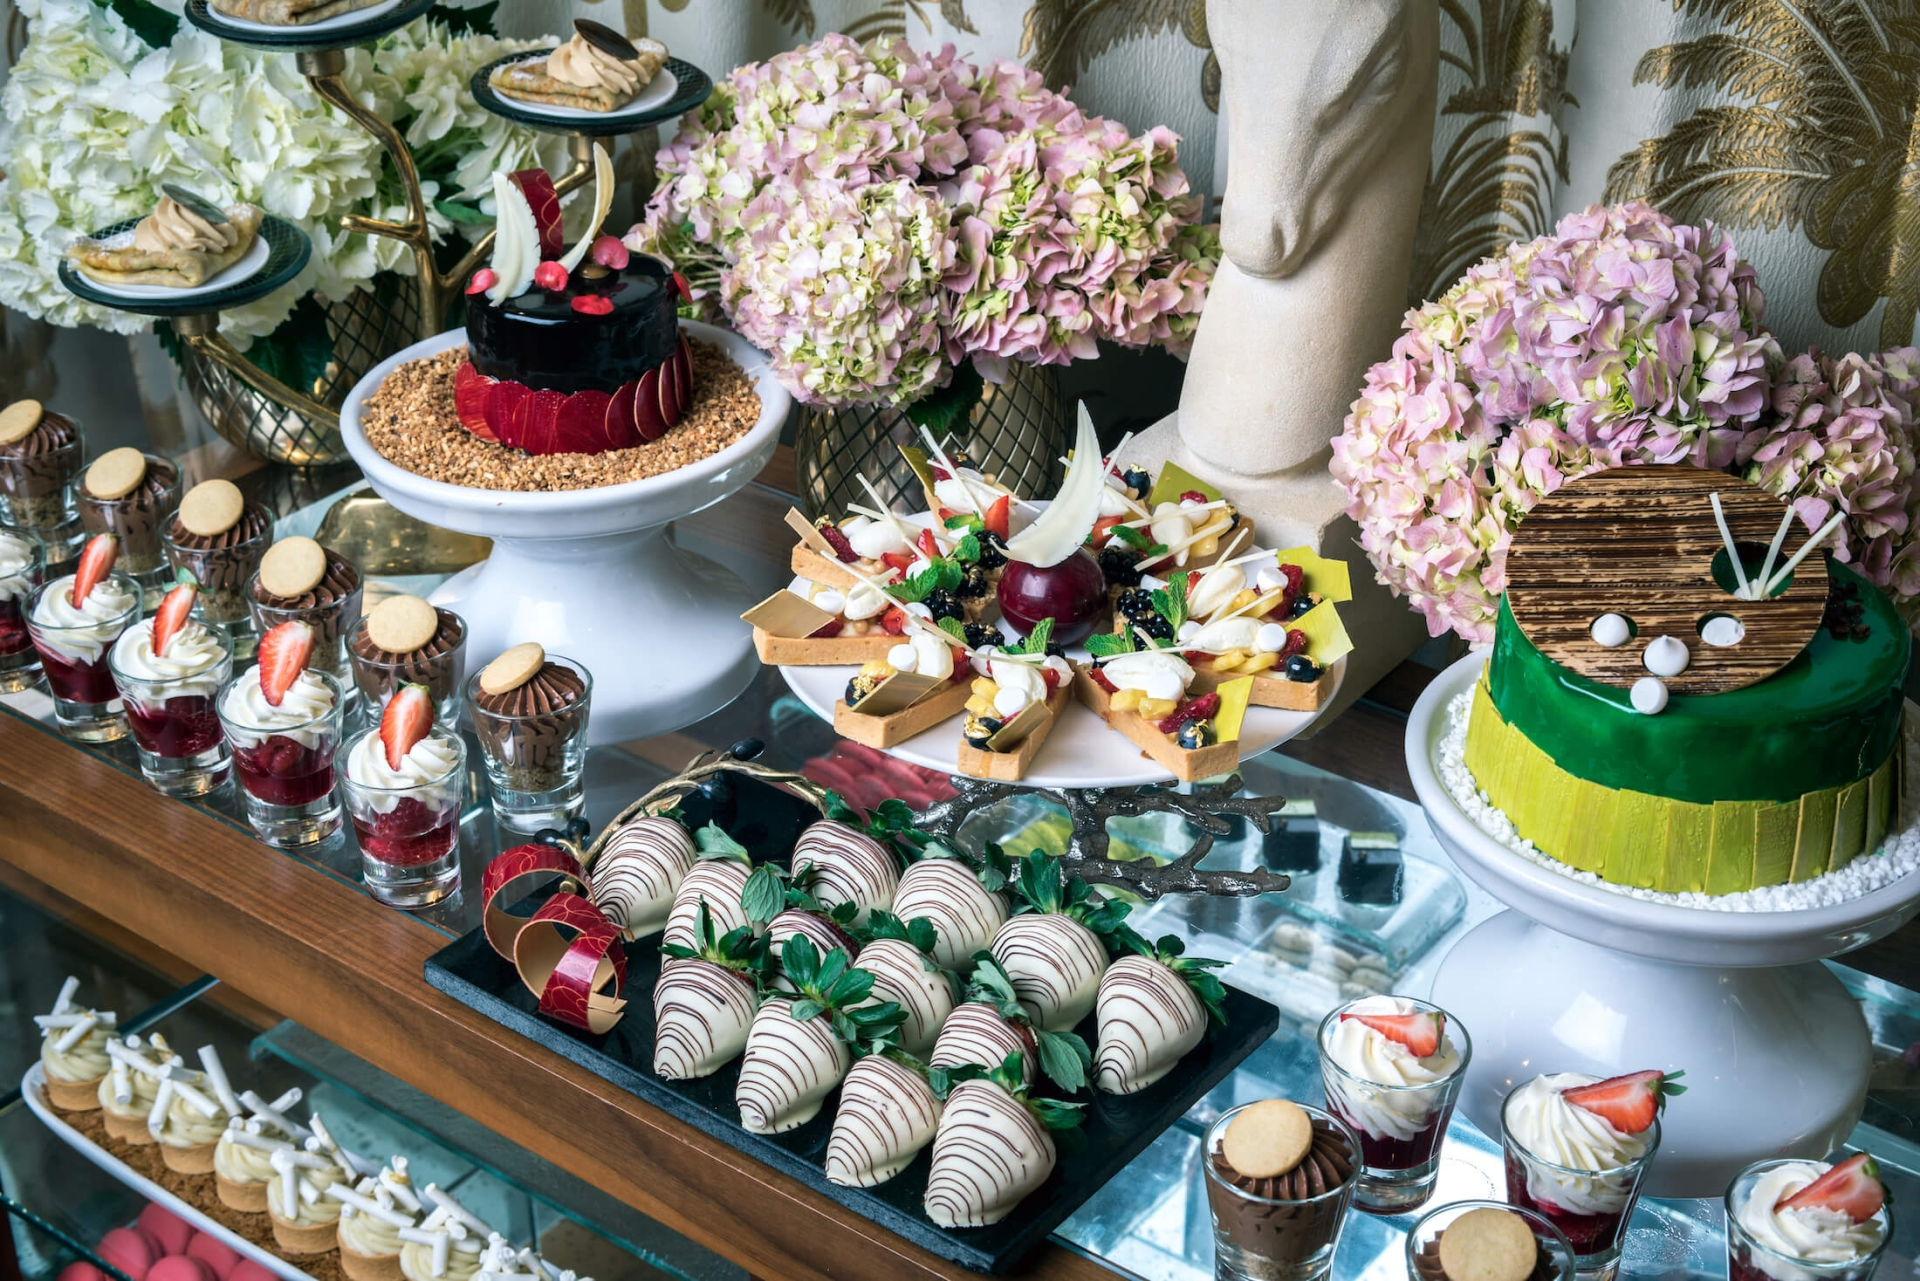 multiple desserts sitting on table surrounded by flowers